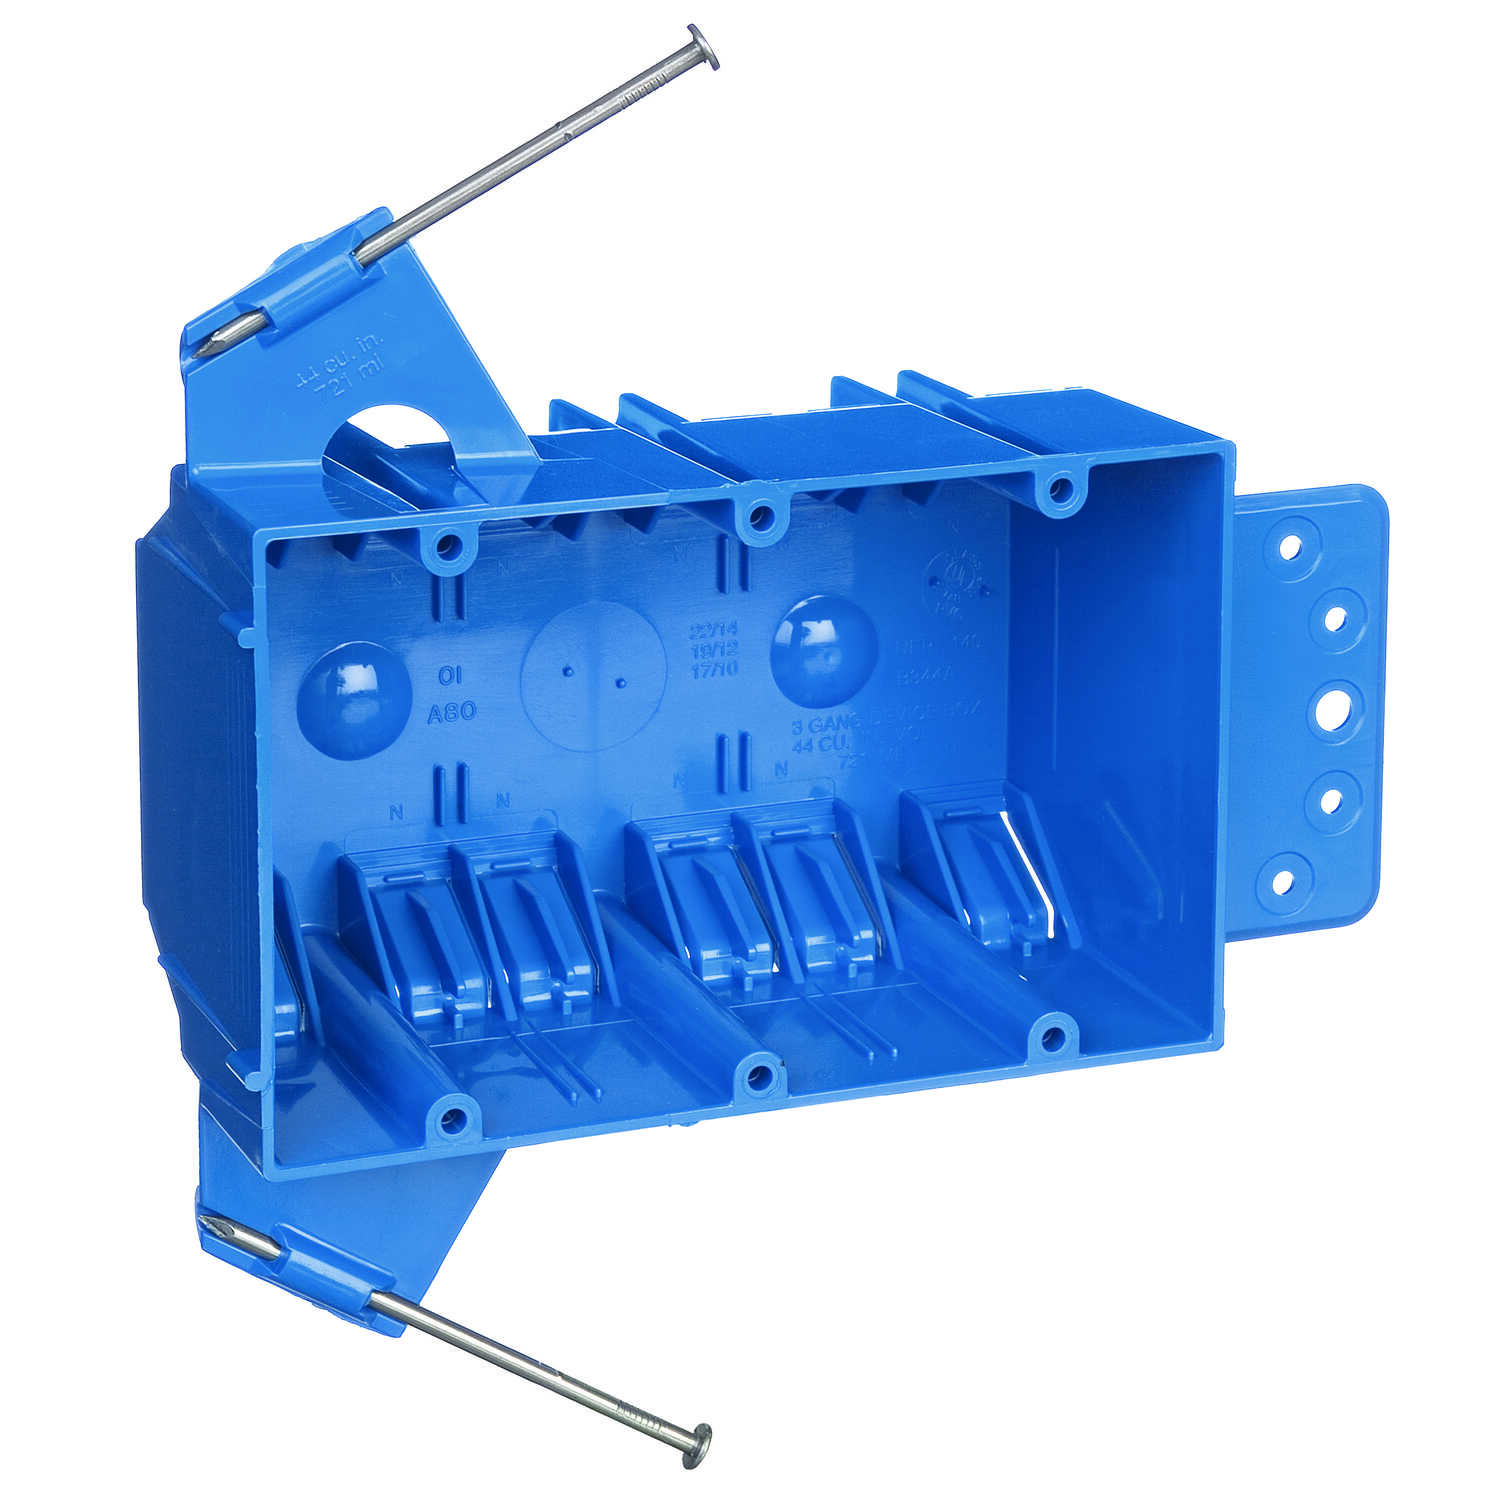 Carlon 5-5/8 in. 5-5/8 in. H 3 Gang 3 gang Outlet Box Blue PVC ...